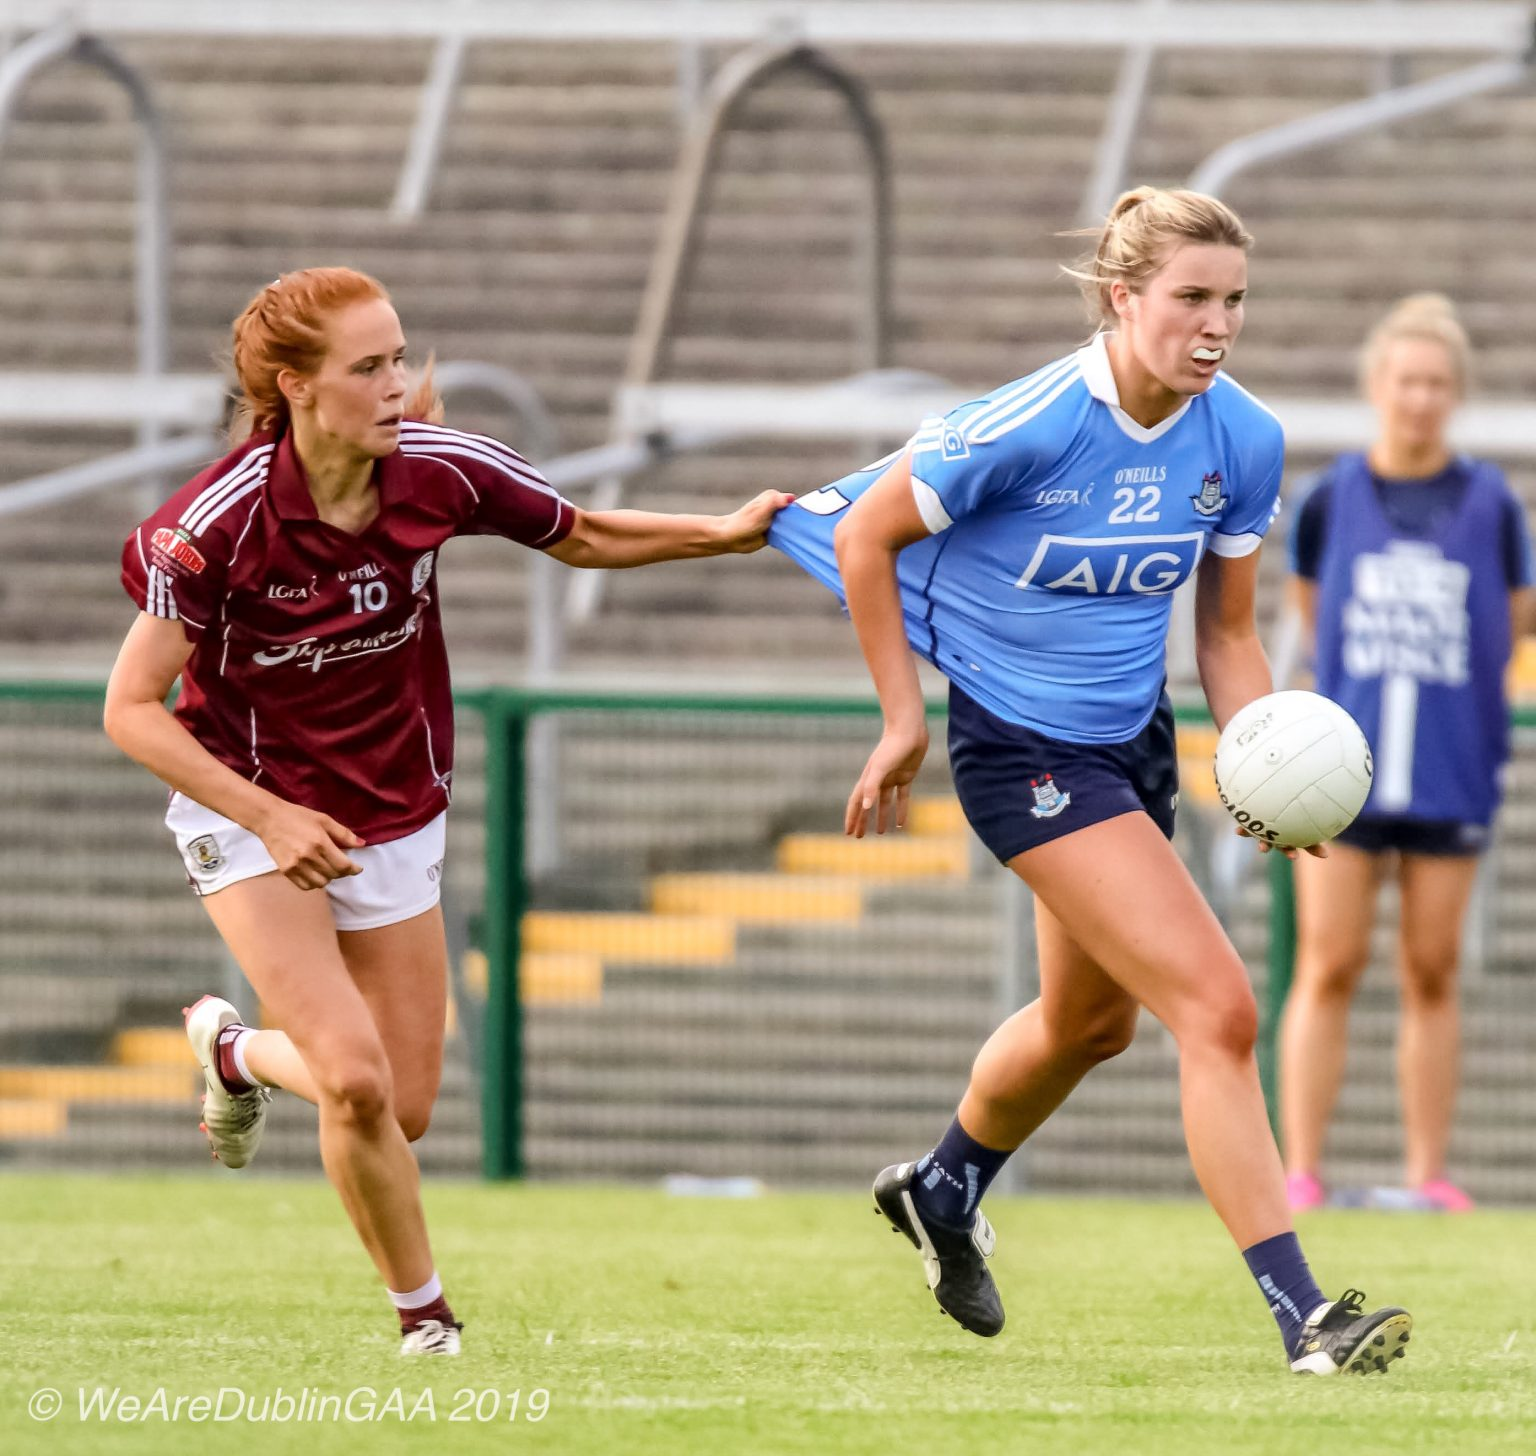 A Dublin Senior Team Ladies footballer in a sky blue jersey and navy shorts tries to get away from a Galway player in a maroon jersey and white shorts who is holding onto her jersey